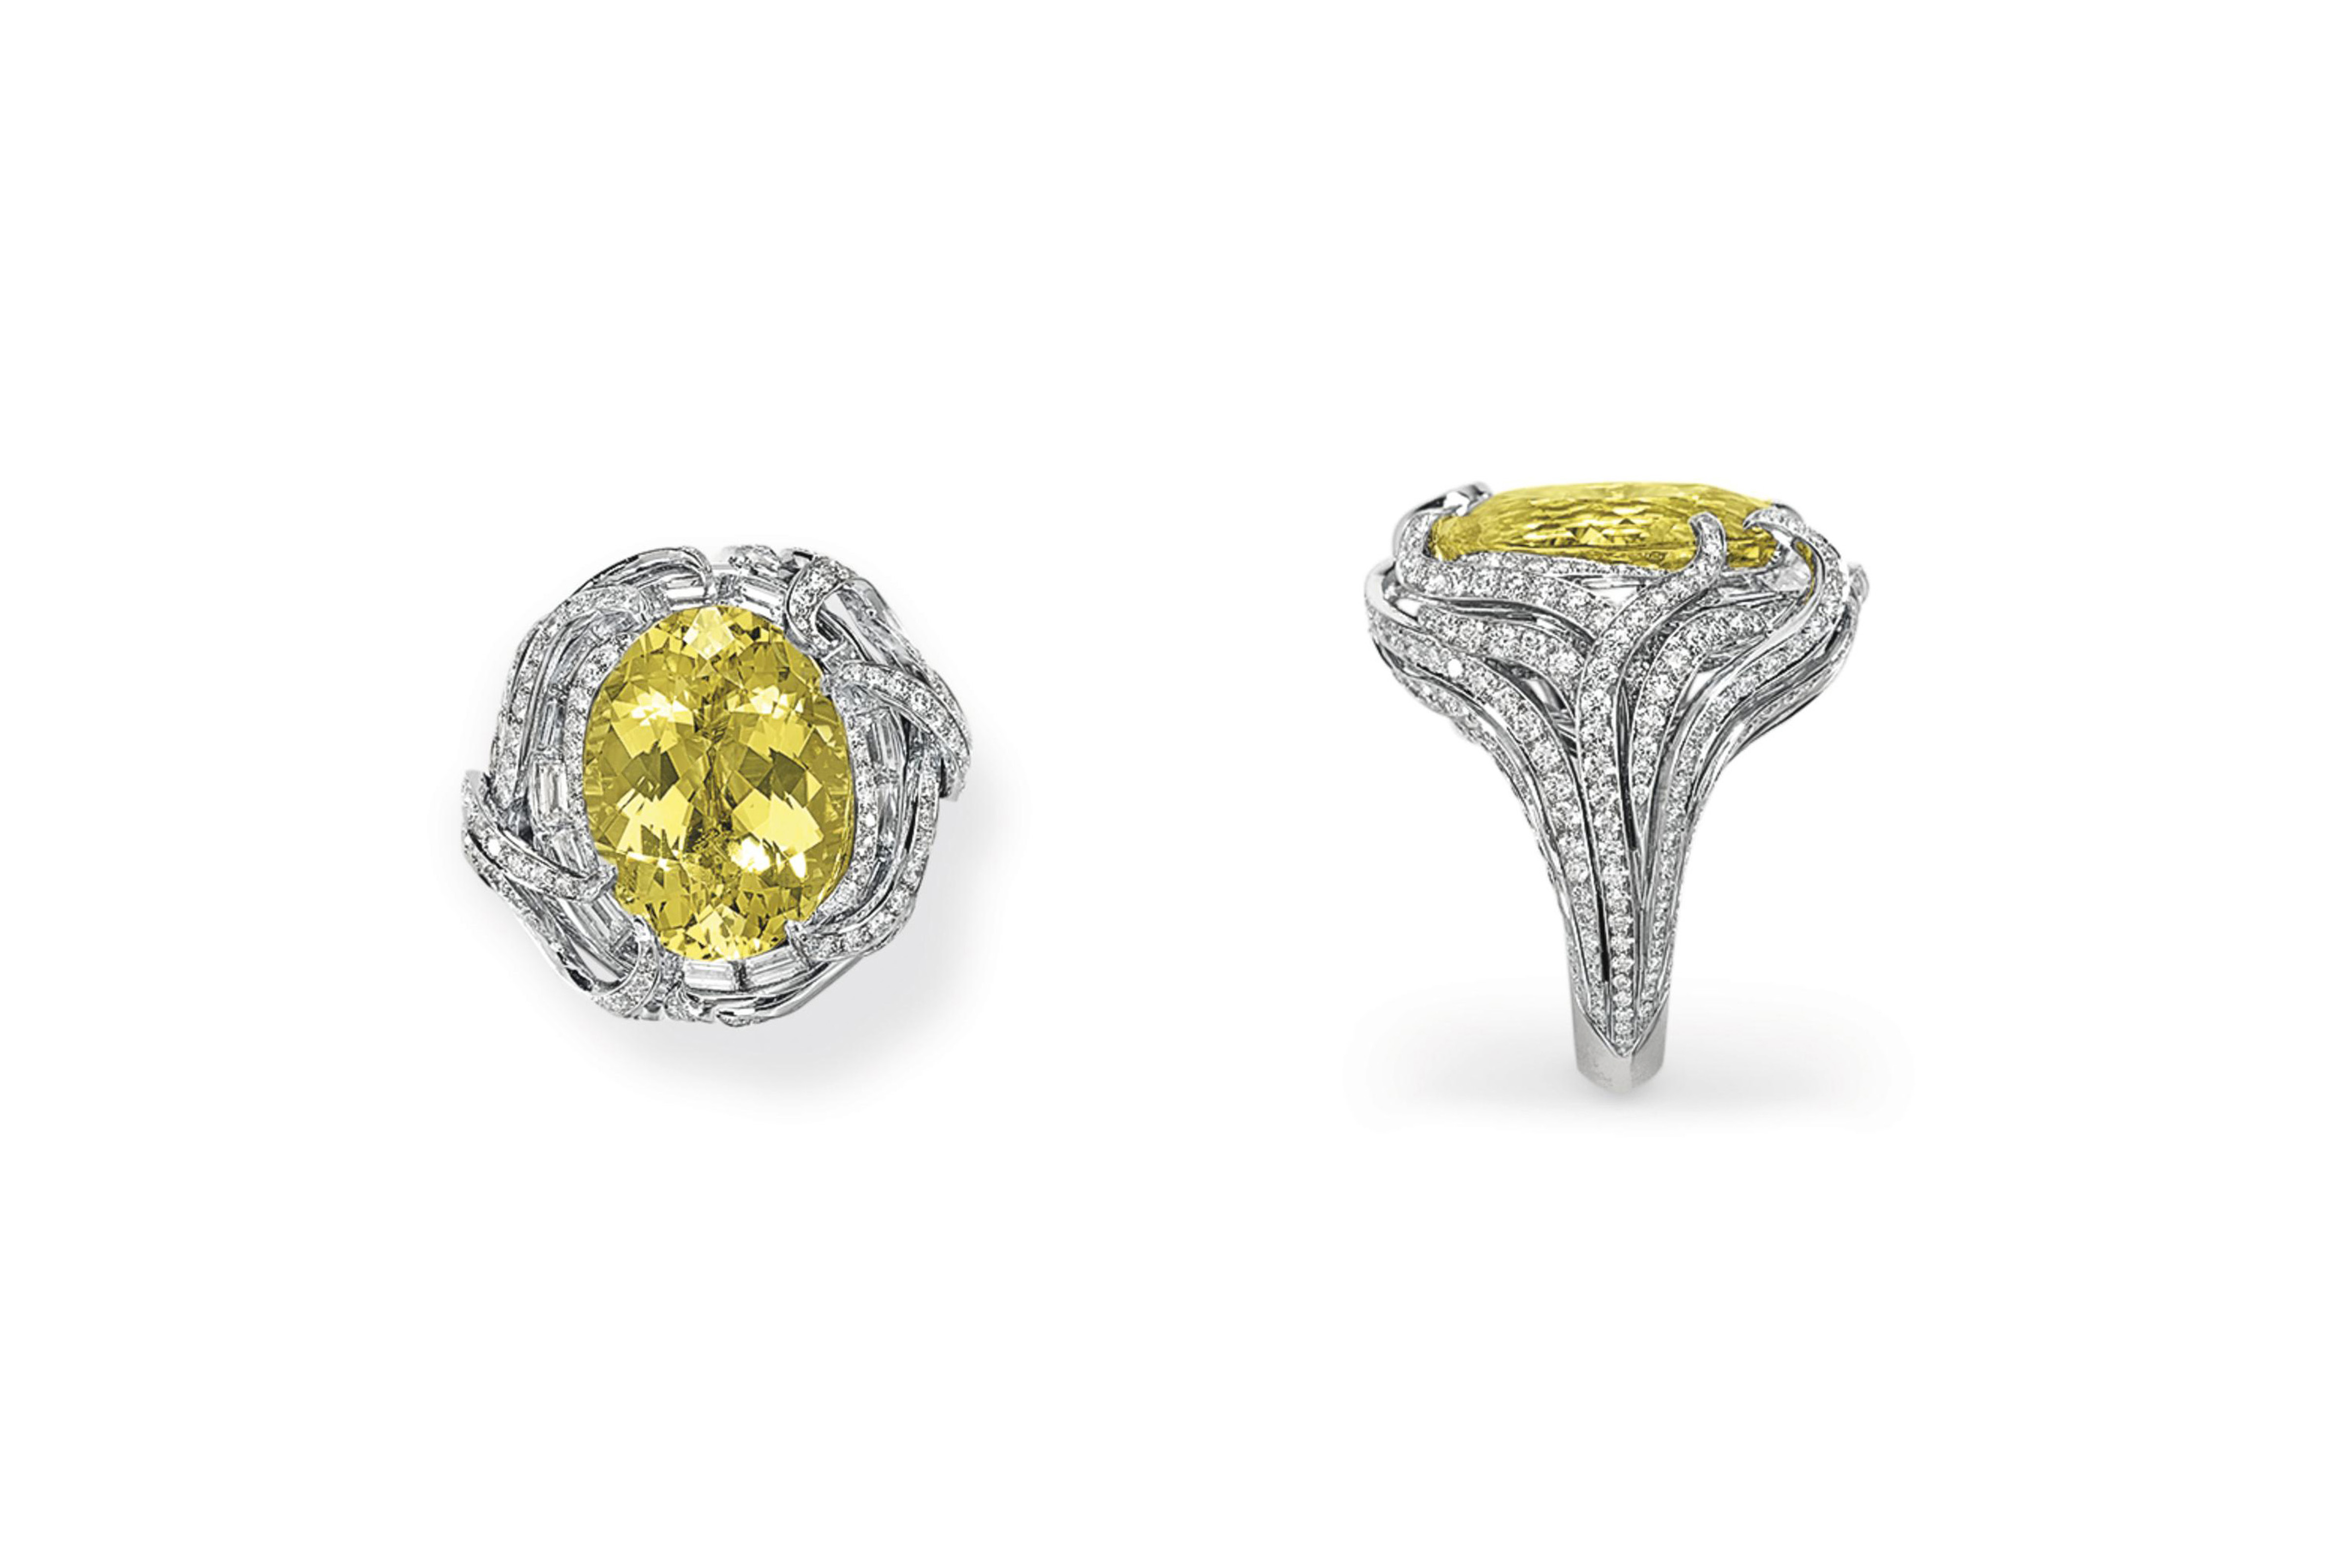 A YELLOW BERYL AND DIAMOND RING, MOUNTED BY TAFFIN